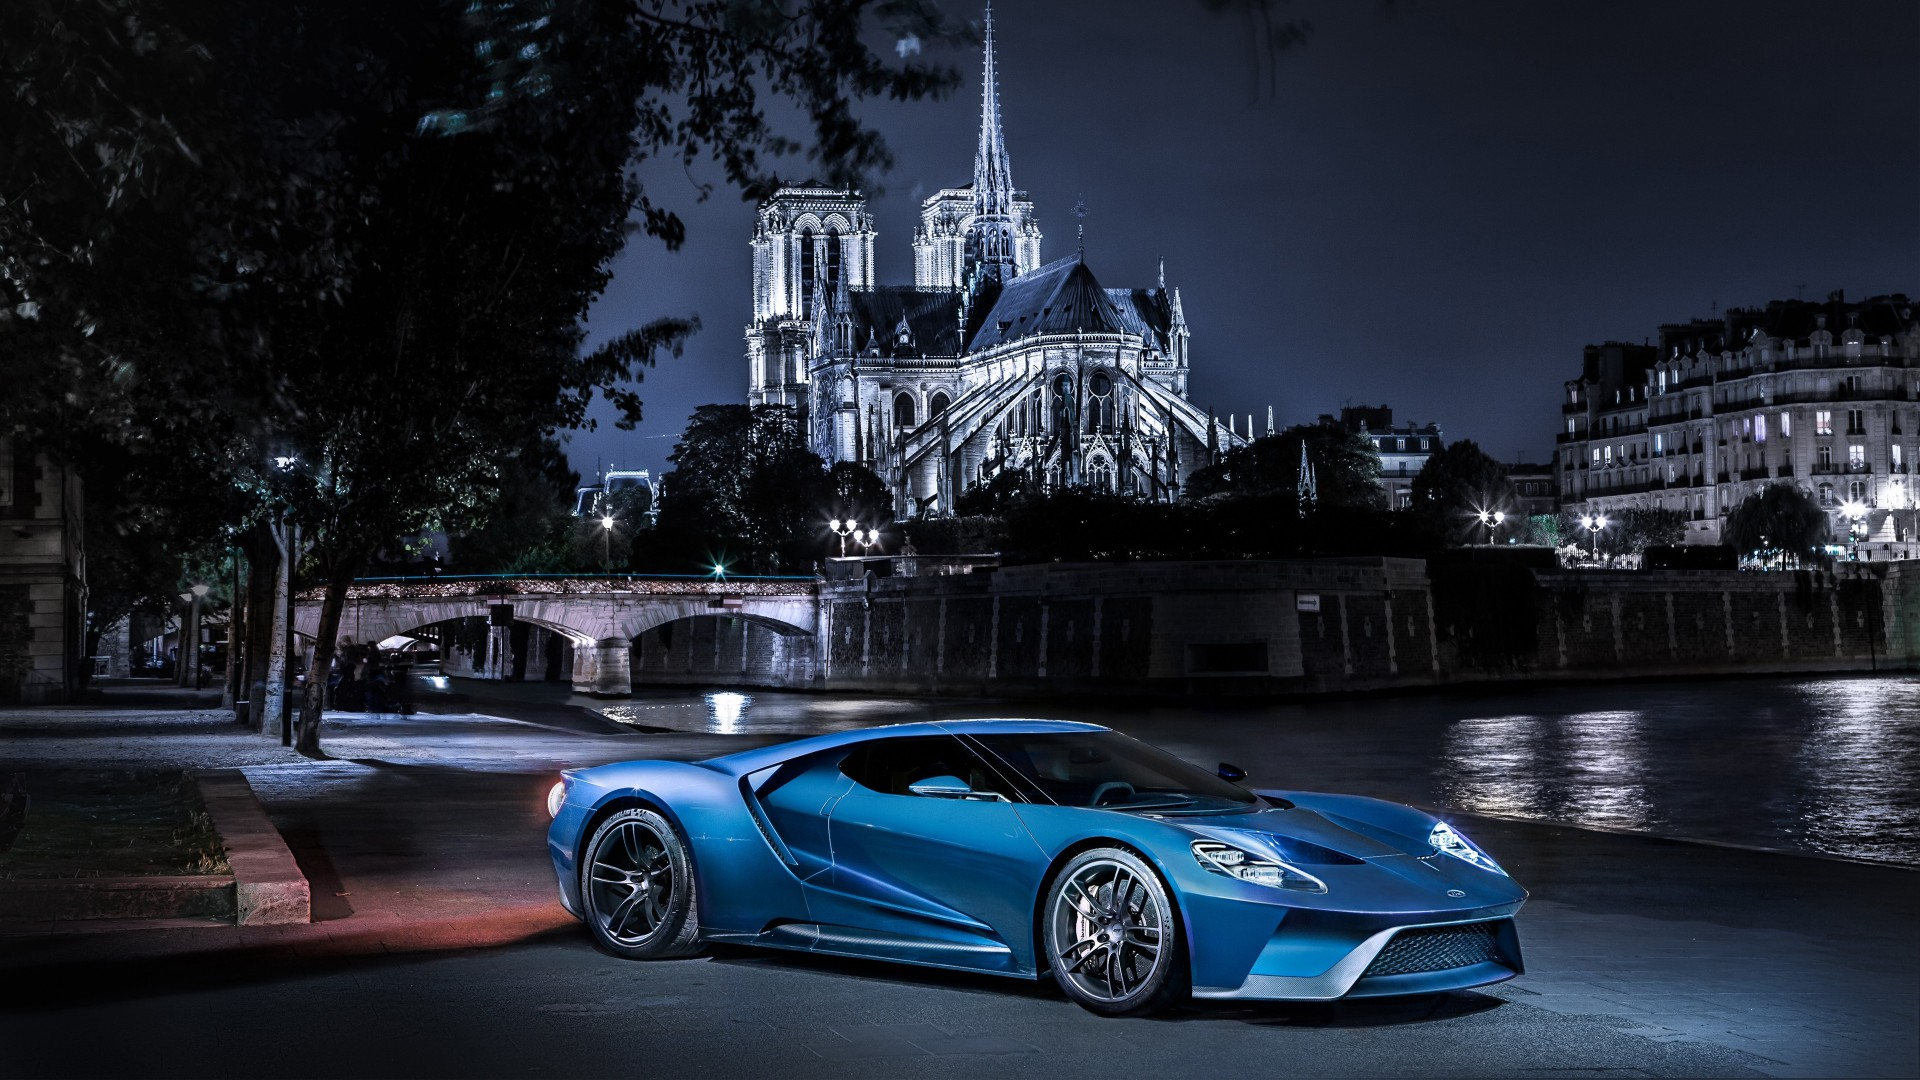 Ford Gt Supercars American Cars 2017 4k Uhd Widescreen: Ford GT Supercar Wallpaper